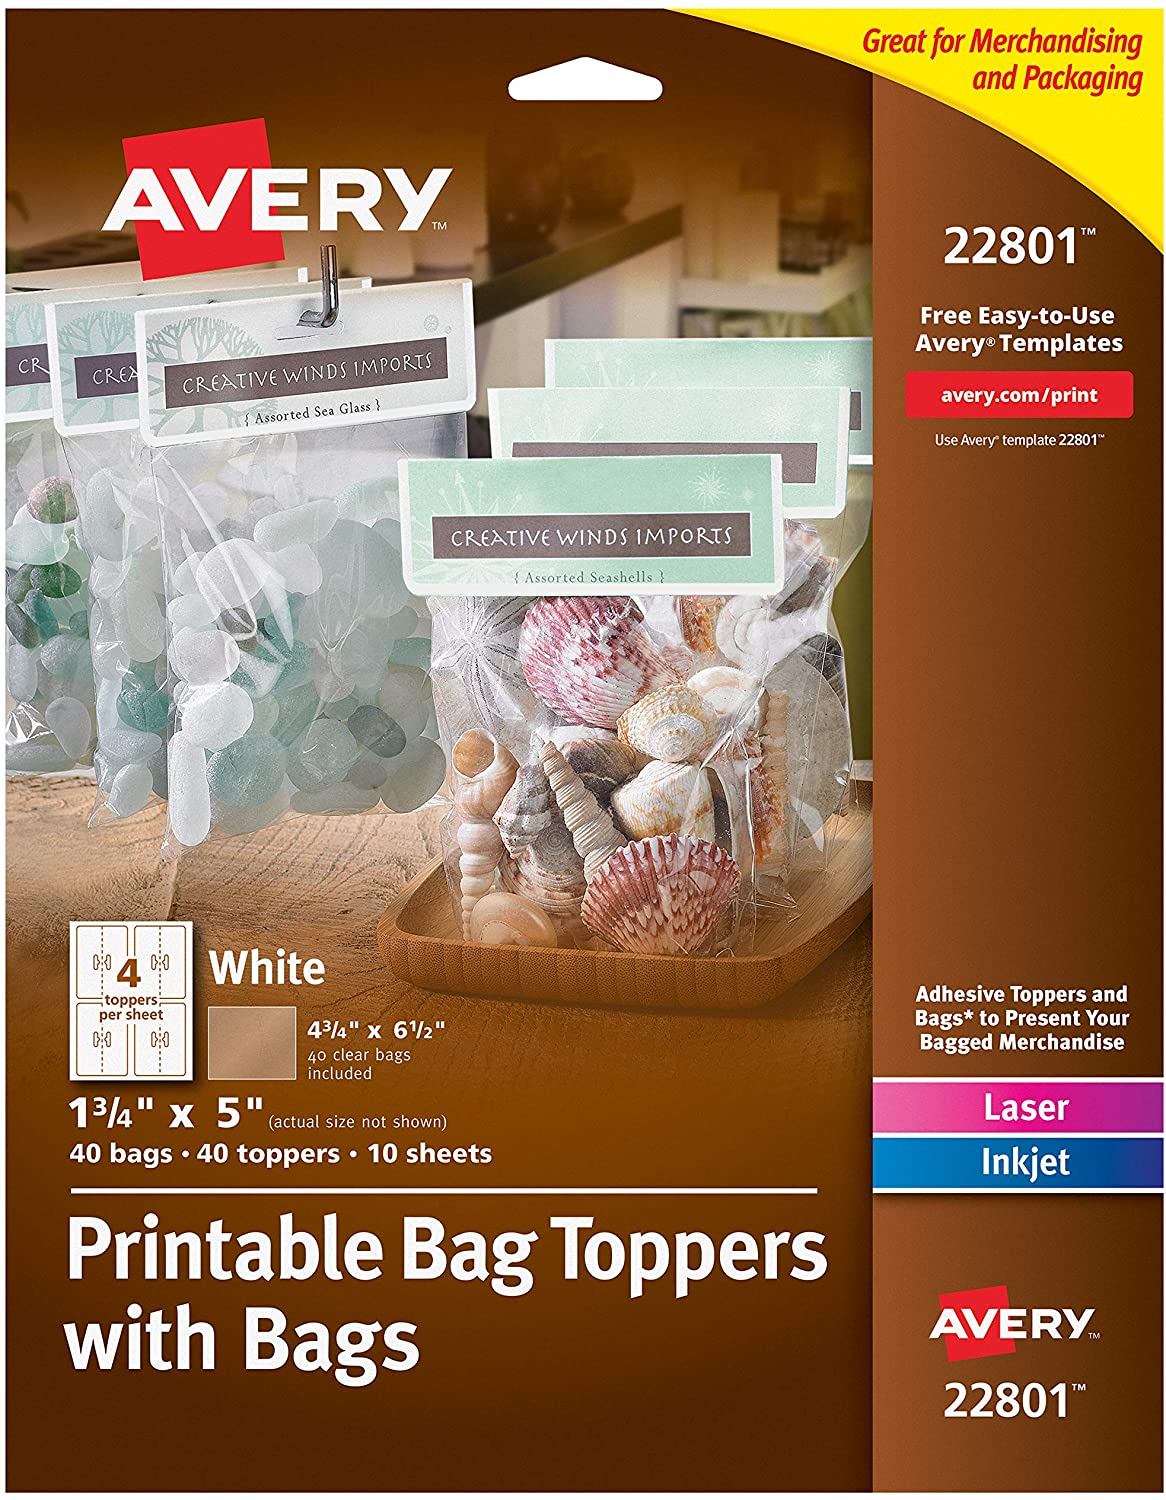 Avery® Printable Bag Toppers with Bags Image